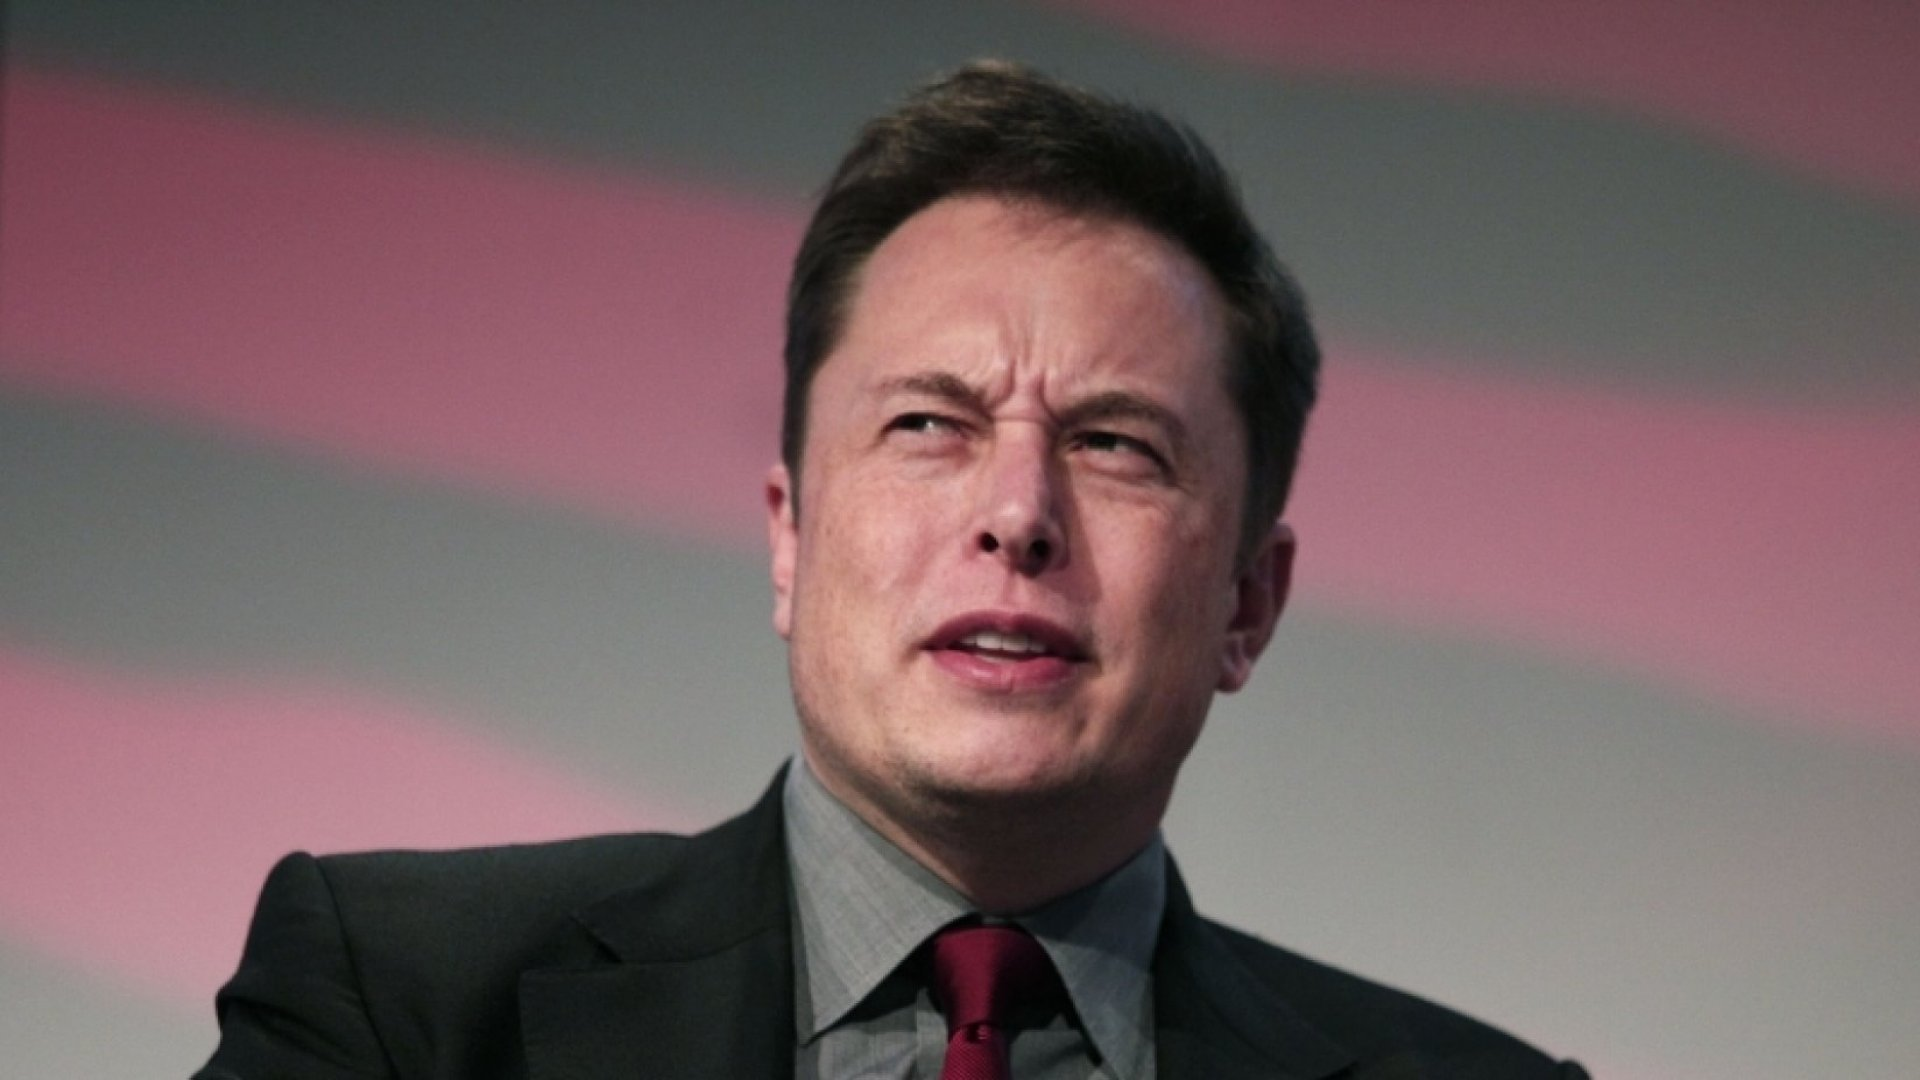 What Startup Keeps Elon Musk Up at Night?